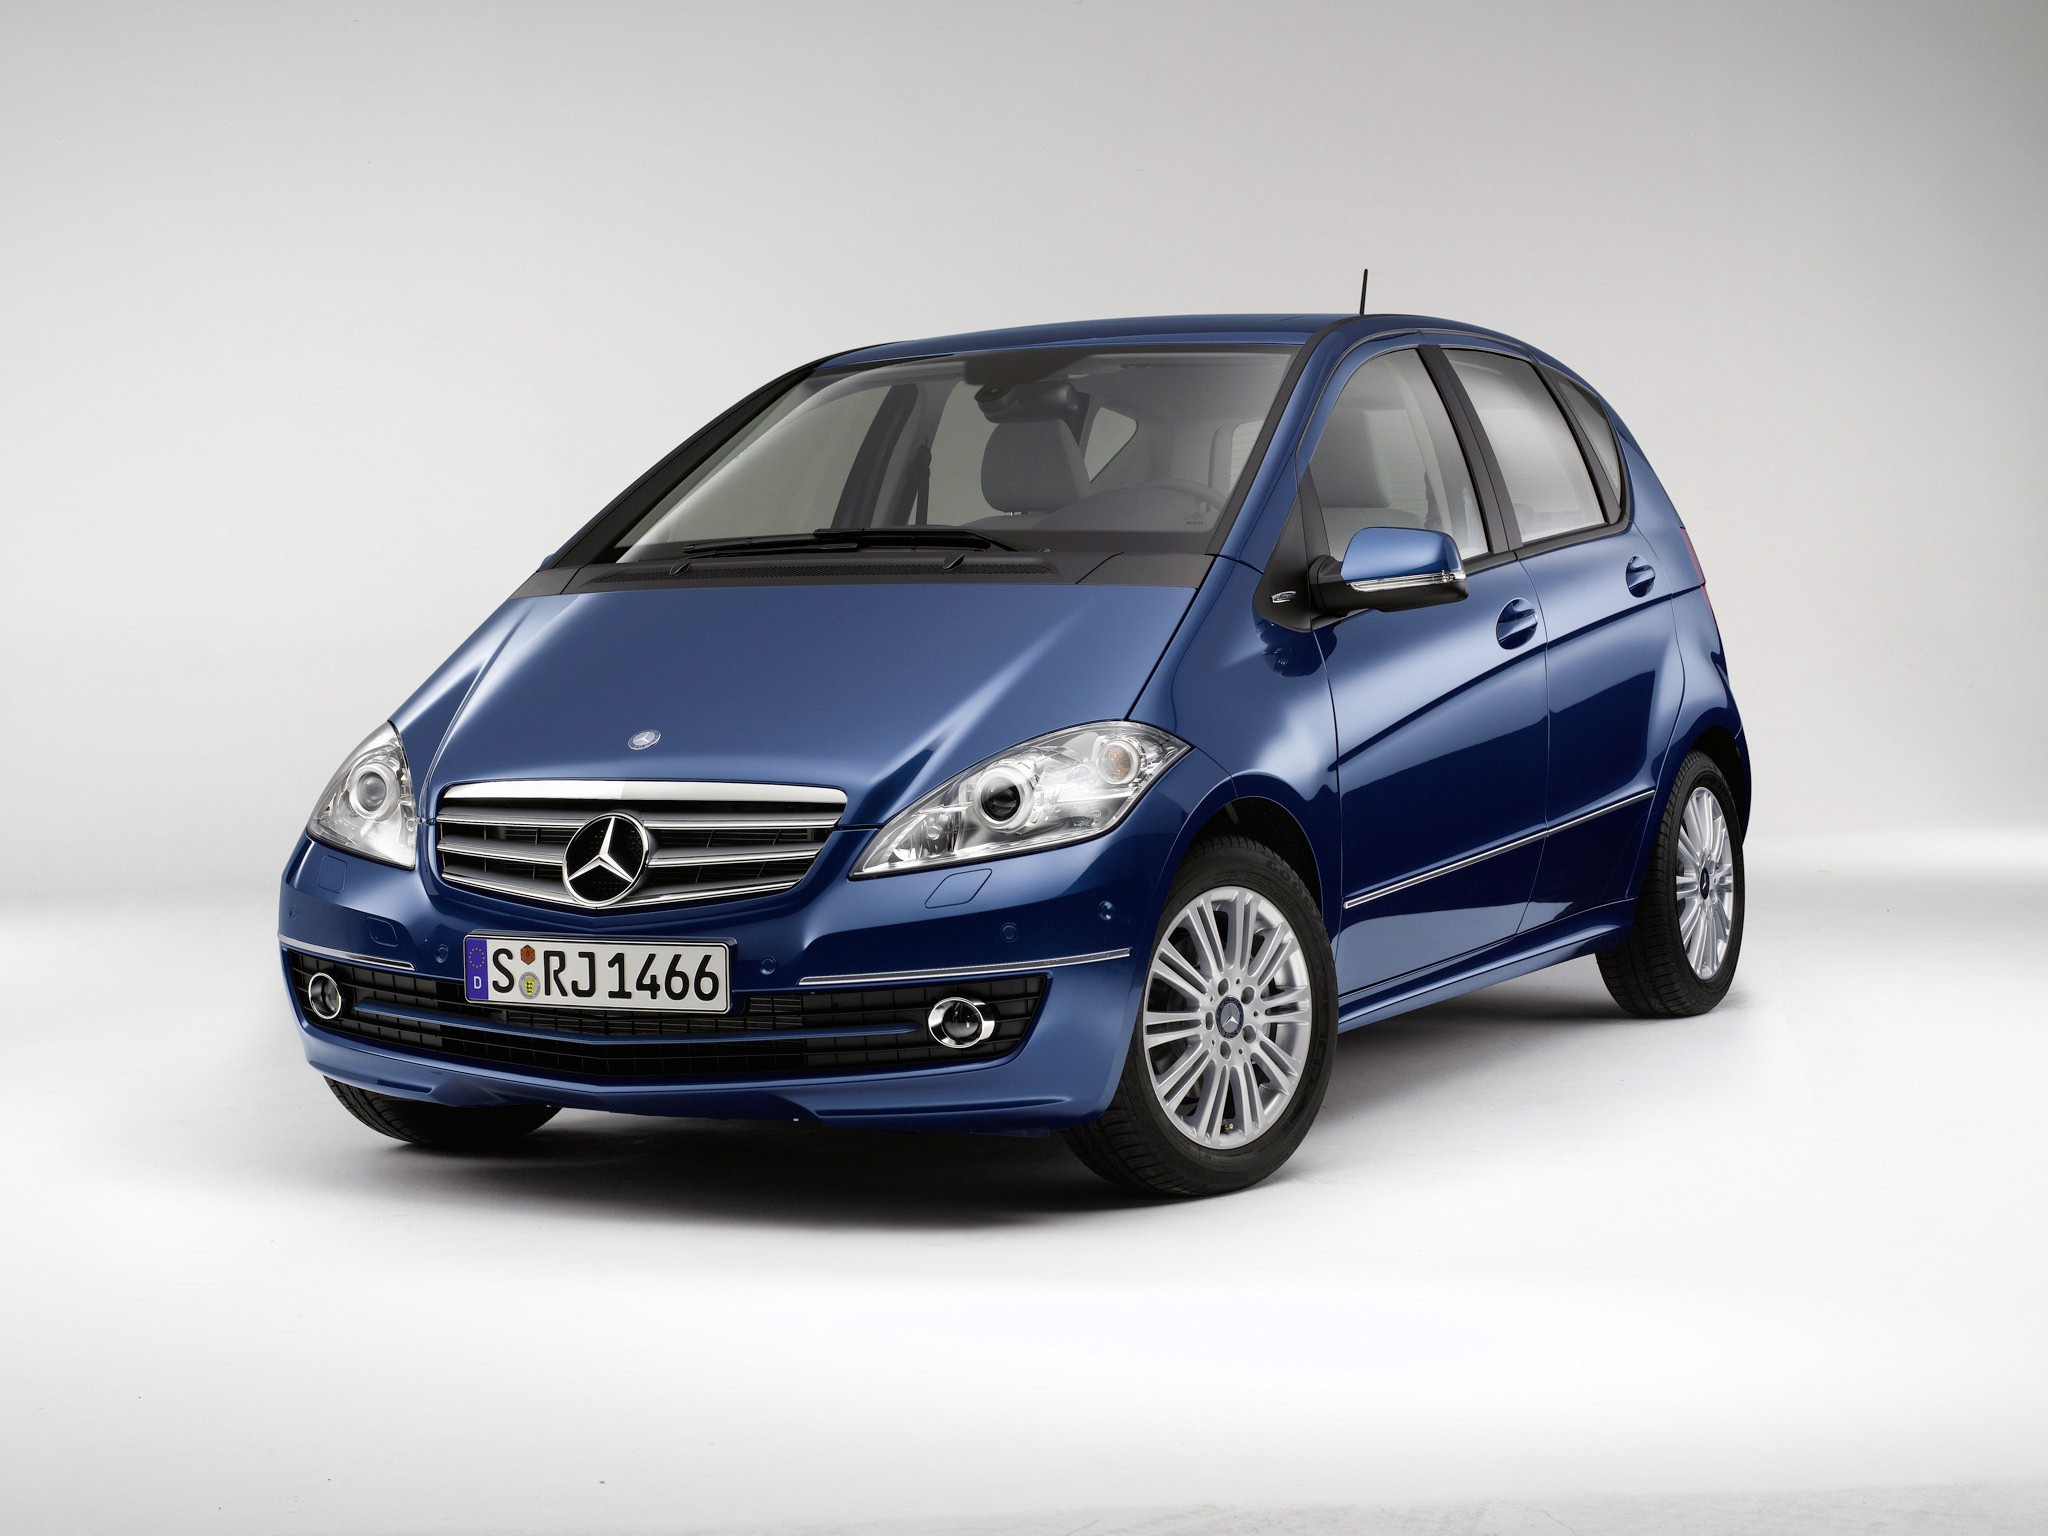 mercedes benz a klasse w169 specs 2008 2009 2010. Black Bedroom Furniture Sets. Home Design Ideas